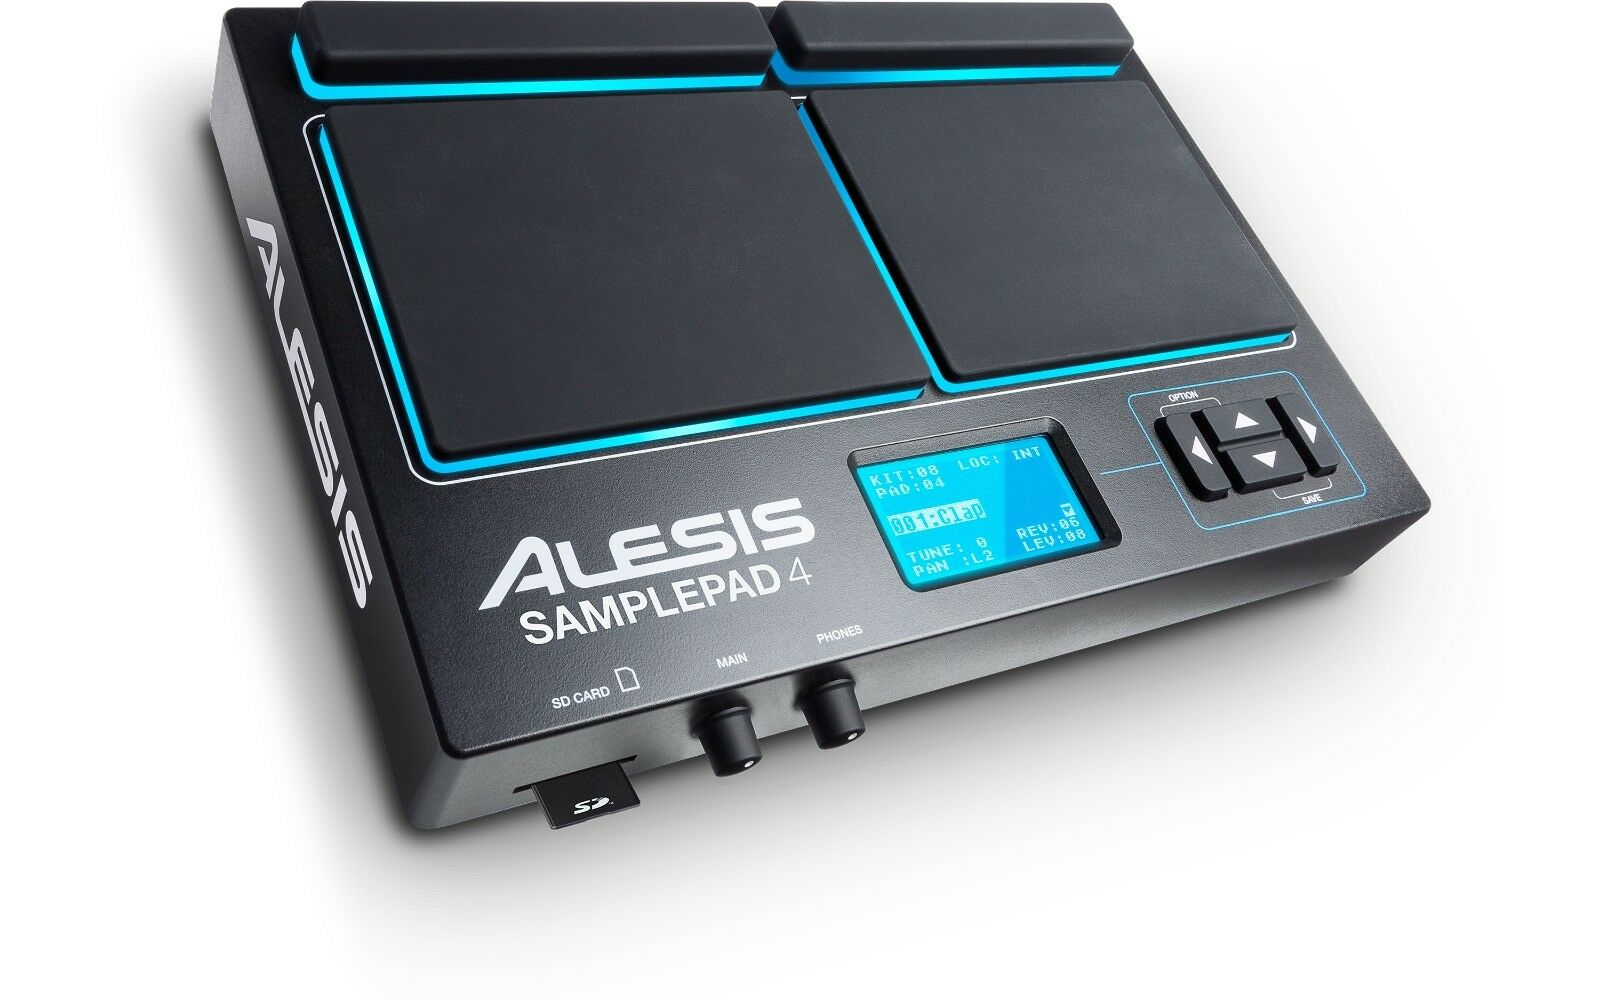 Alesis SamplePad 4 Compact 4-Pad Percussion and Sample-Triggering Instrument